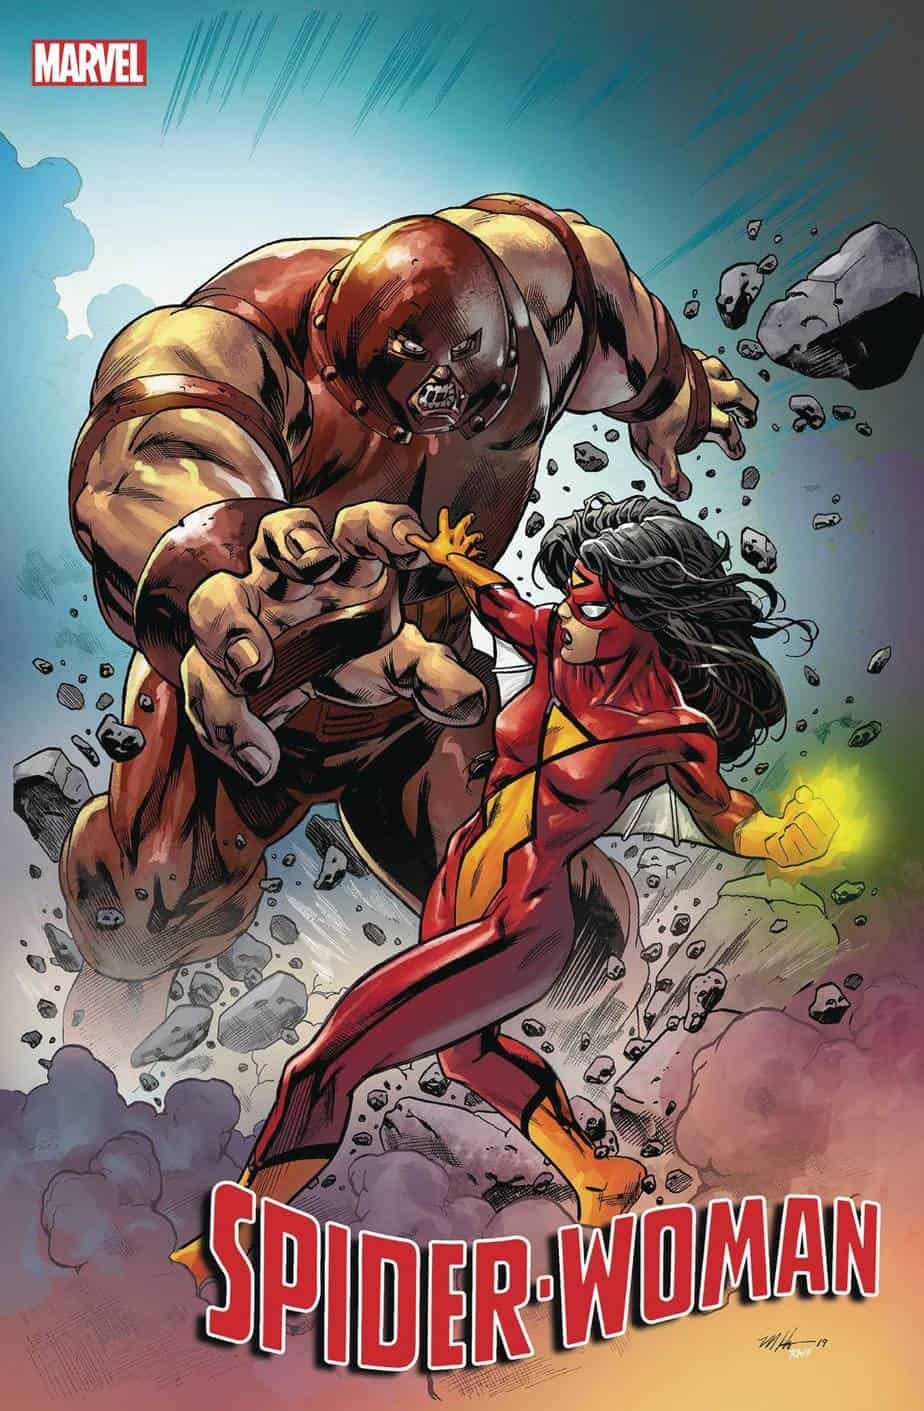 SPIDER-WOMAN #2 - Cover B